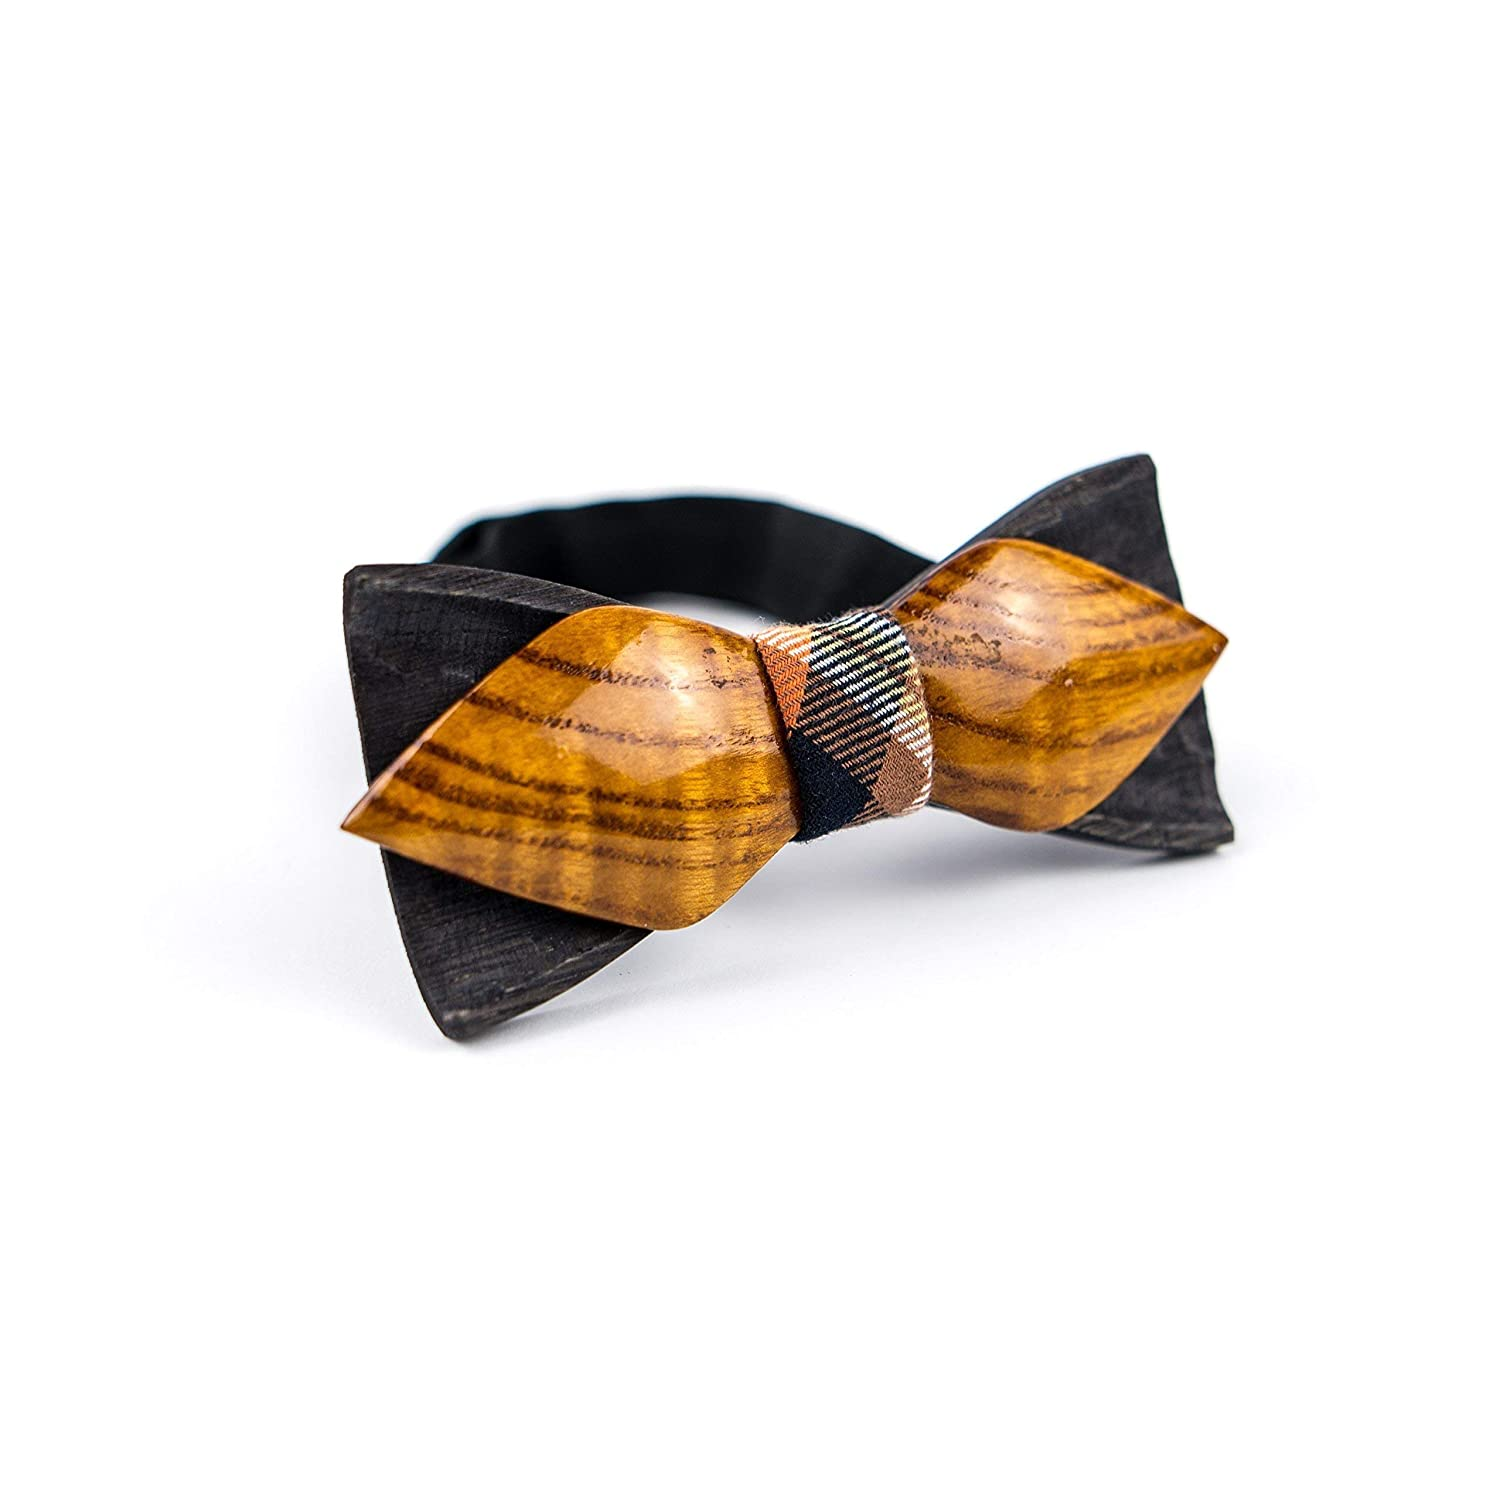 15dc2d6ac582 Amazon.com: Dual Wooden Bow Tie For Men Handmade Wood Bowtie Wedding  Accessory: Handmade